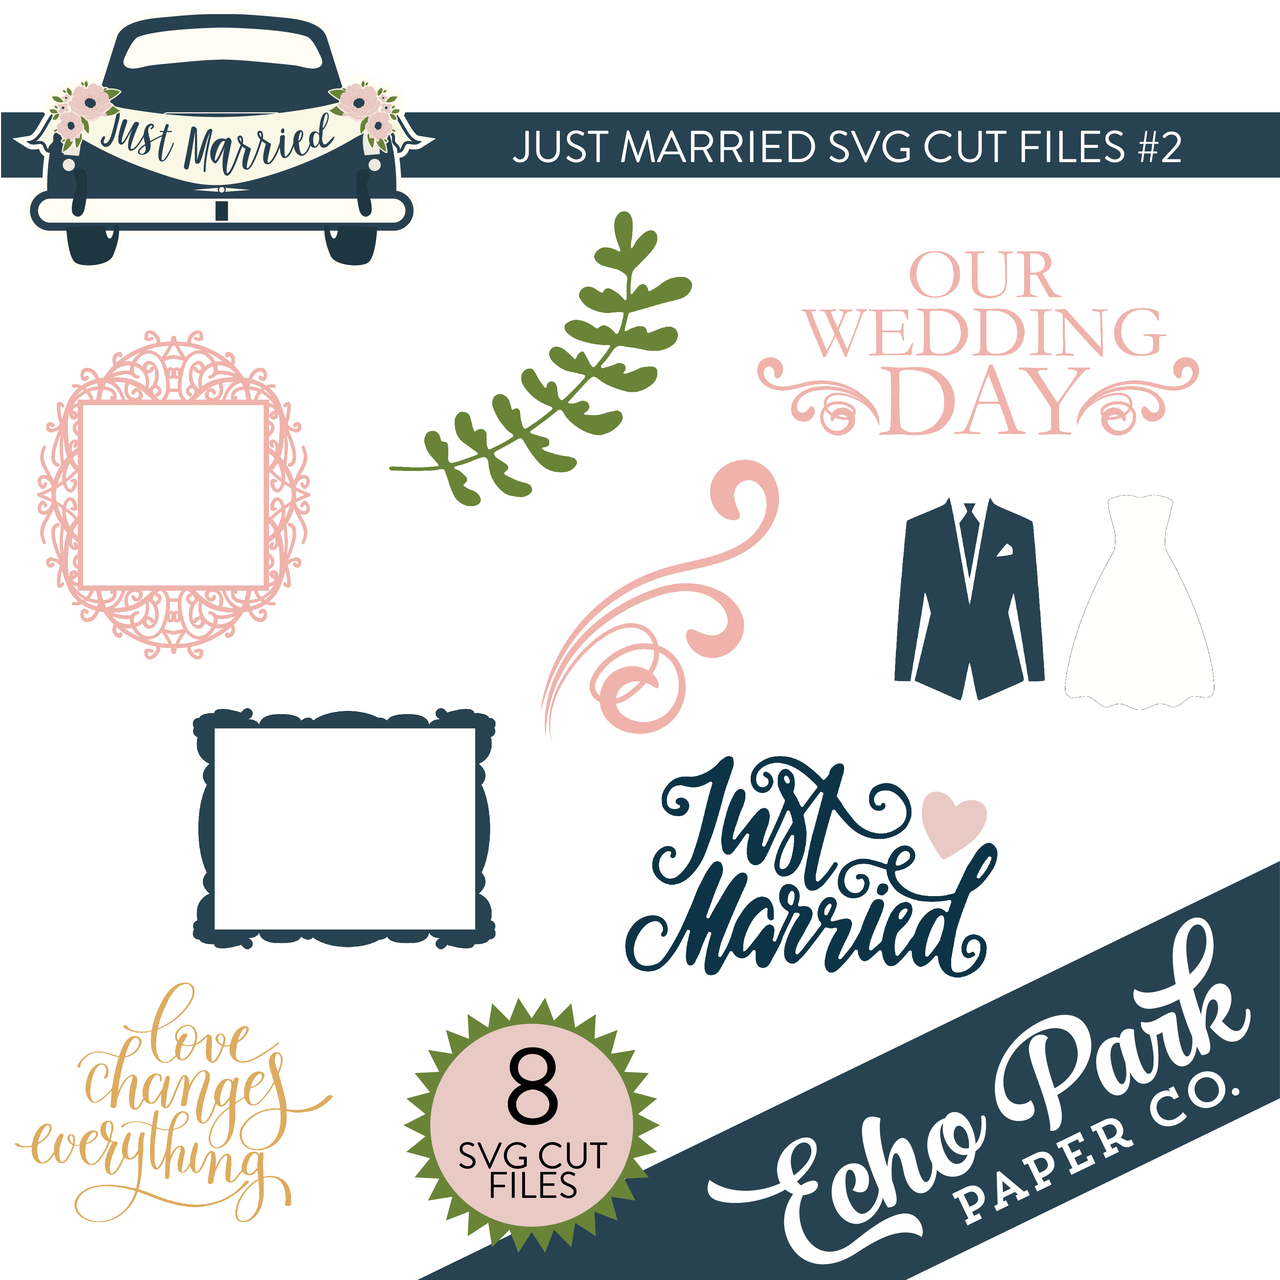 Just Married SVG Cut Files #2